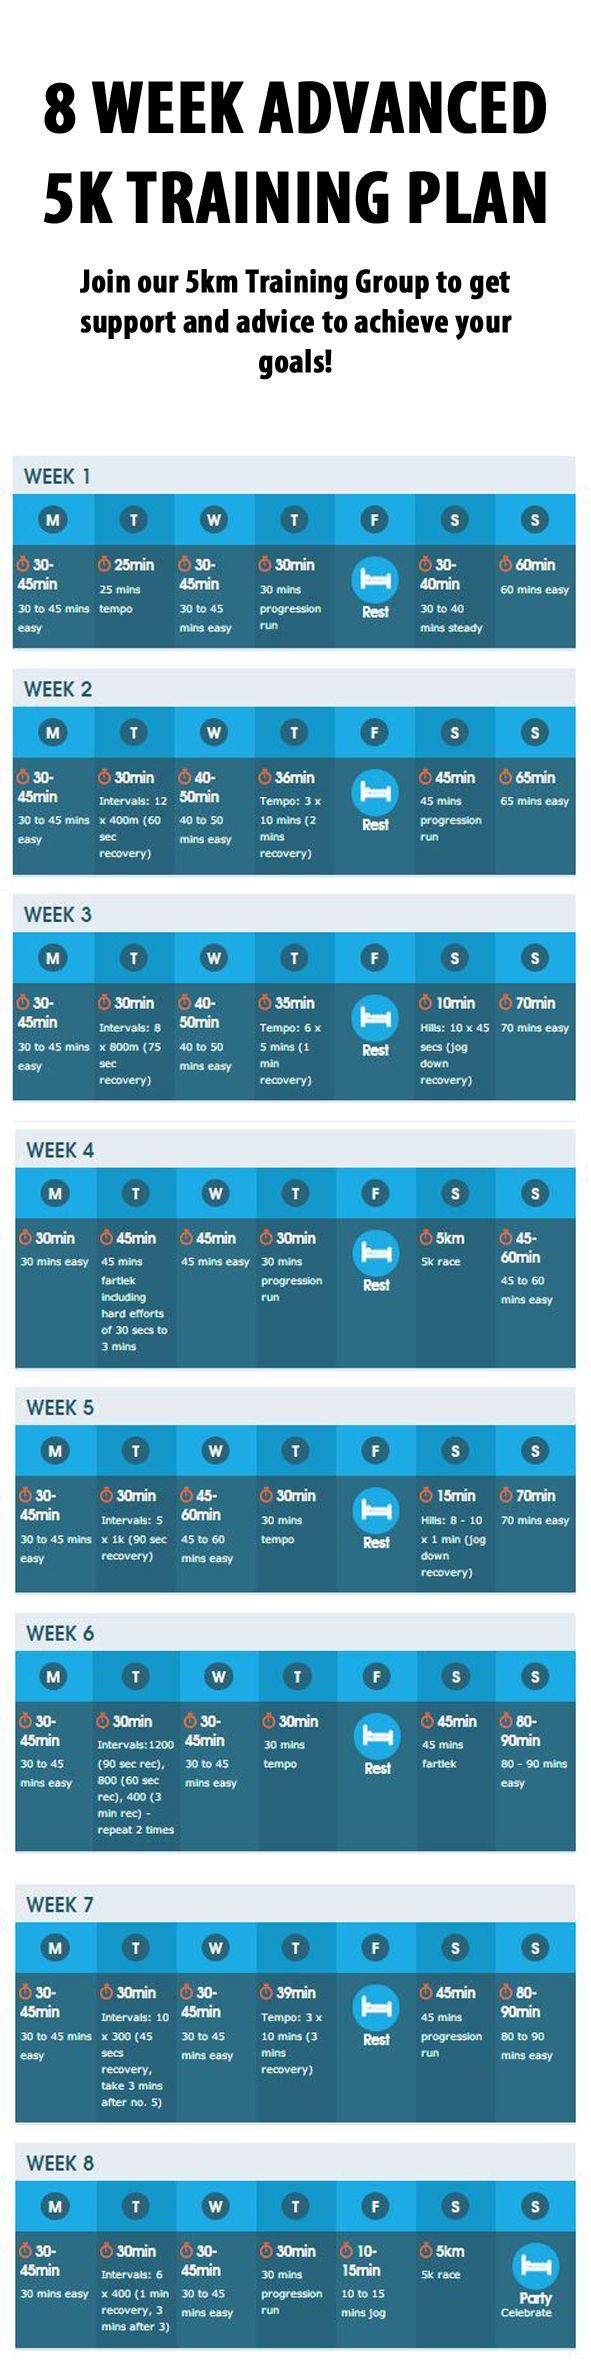 8 WEEK ADVANCED 5K TRAINING PLAN…